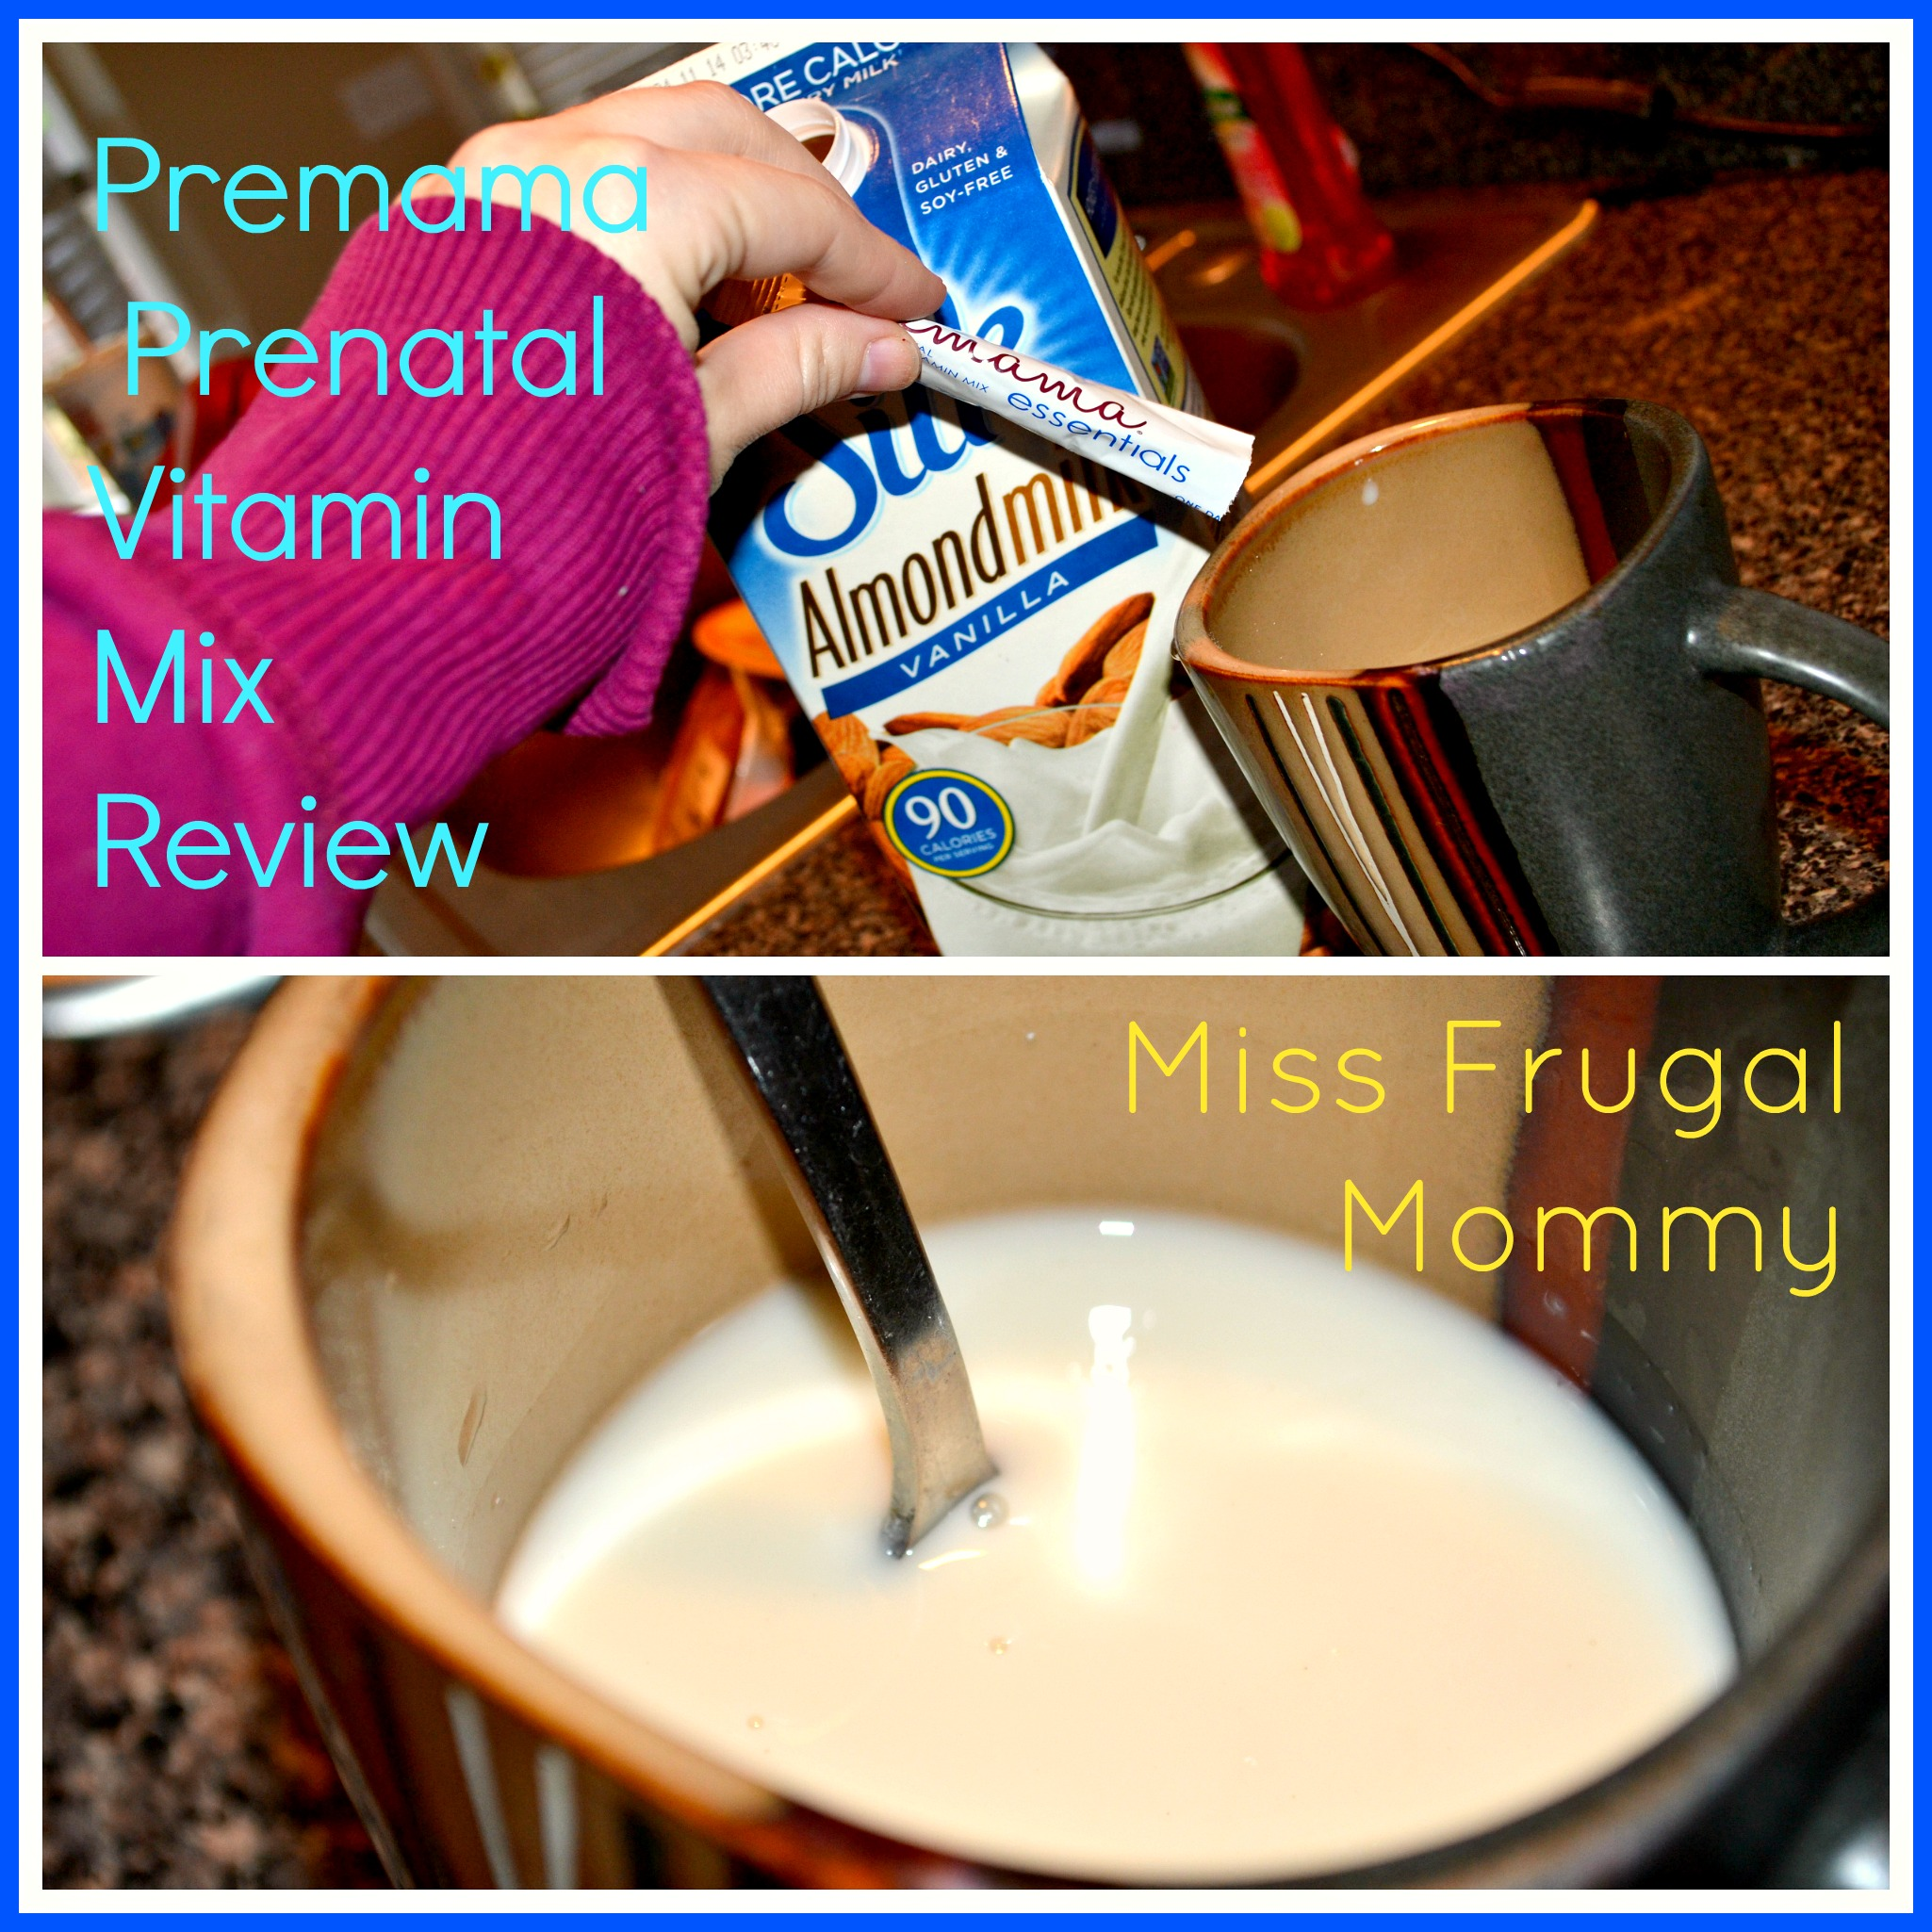 Premama Prenatal Vitamin Mix Review